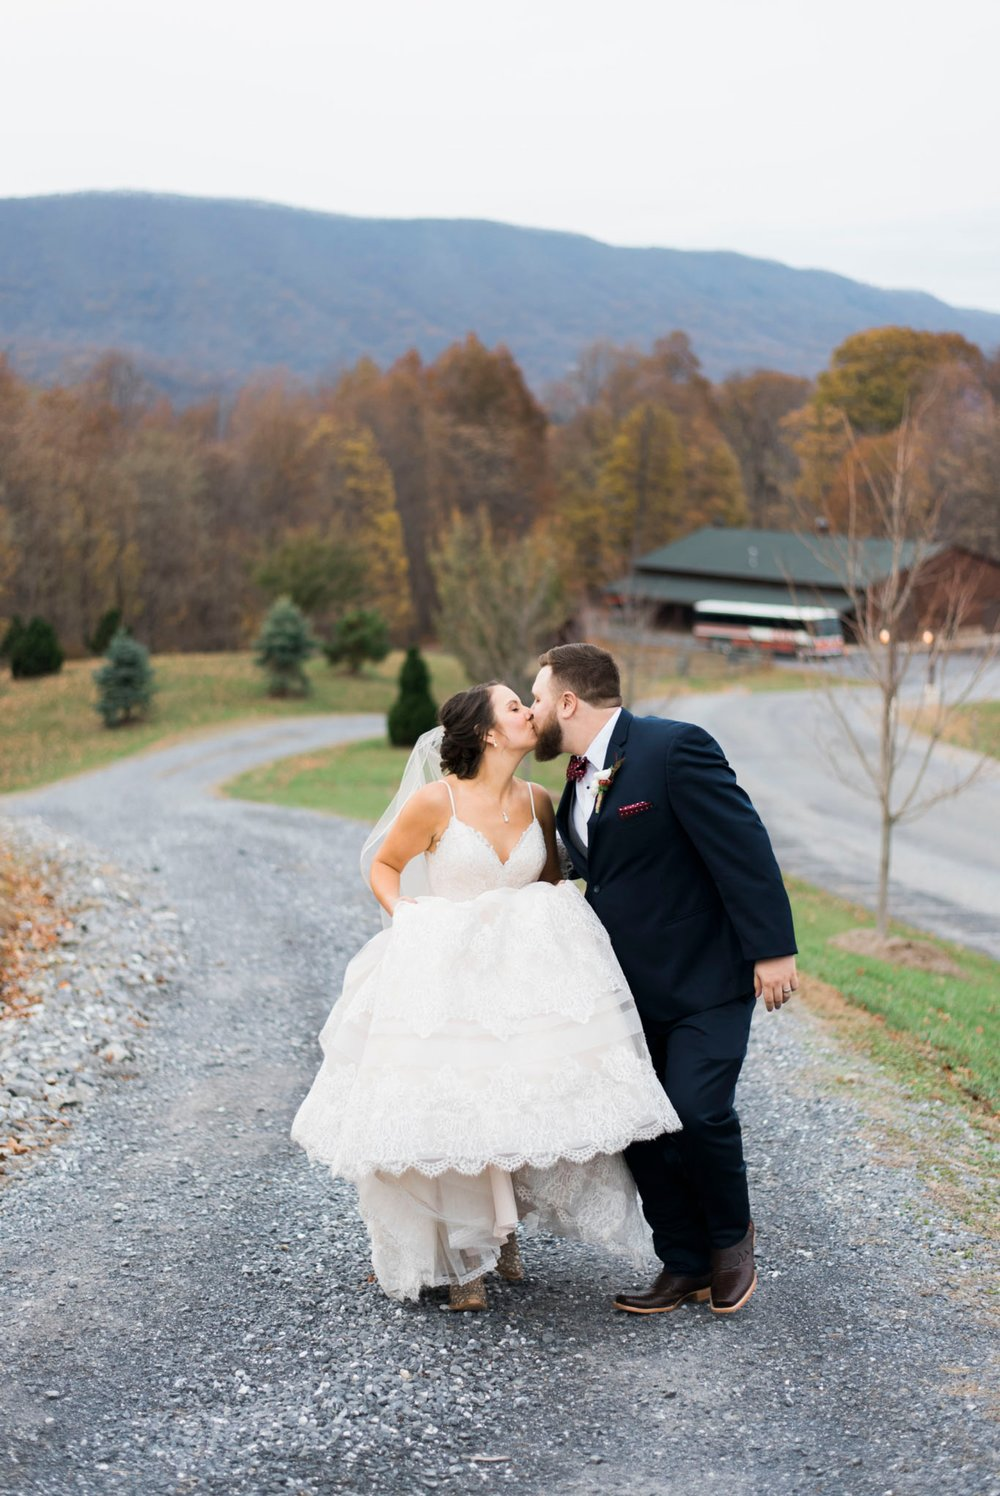 IrvineEstate_LexingtonVA_Wedding_FallWedding_VirginiaWeddingPhotographer 90.jpg